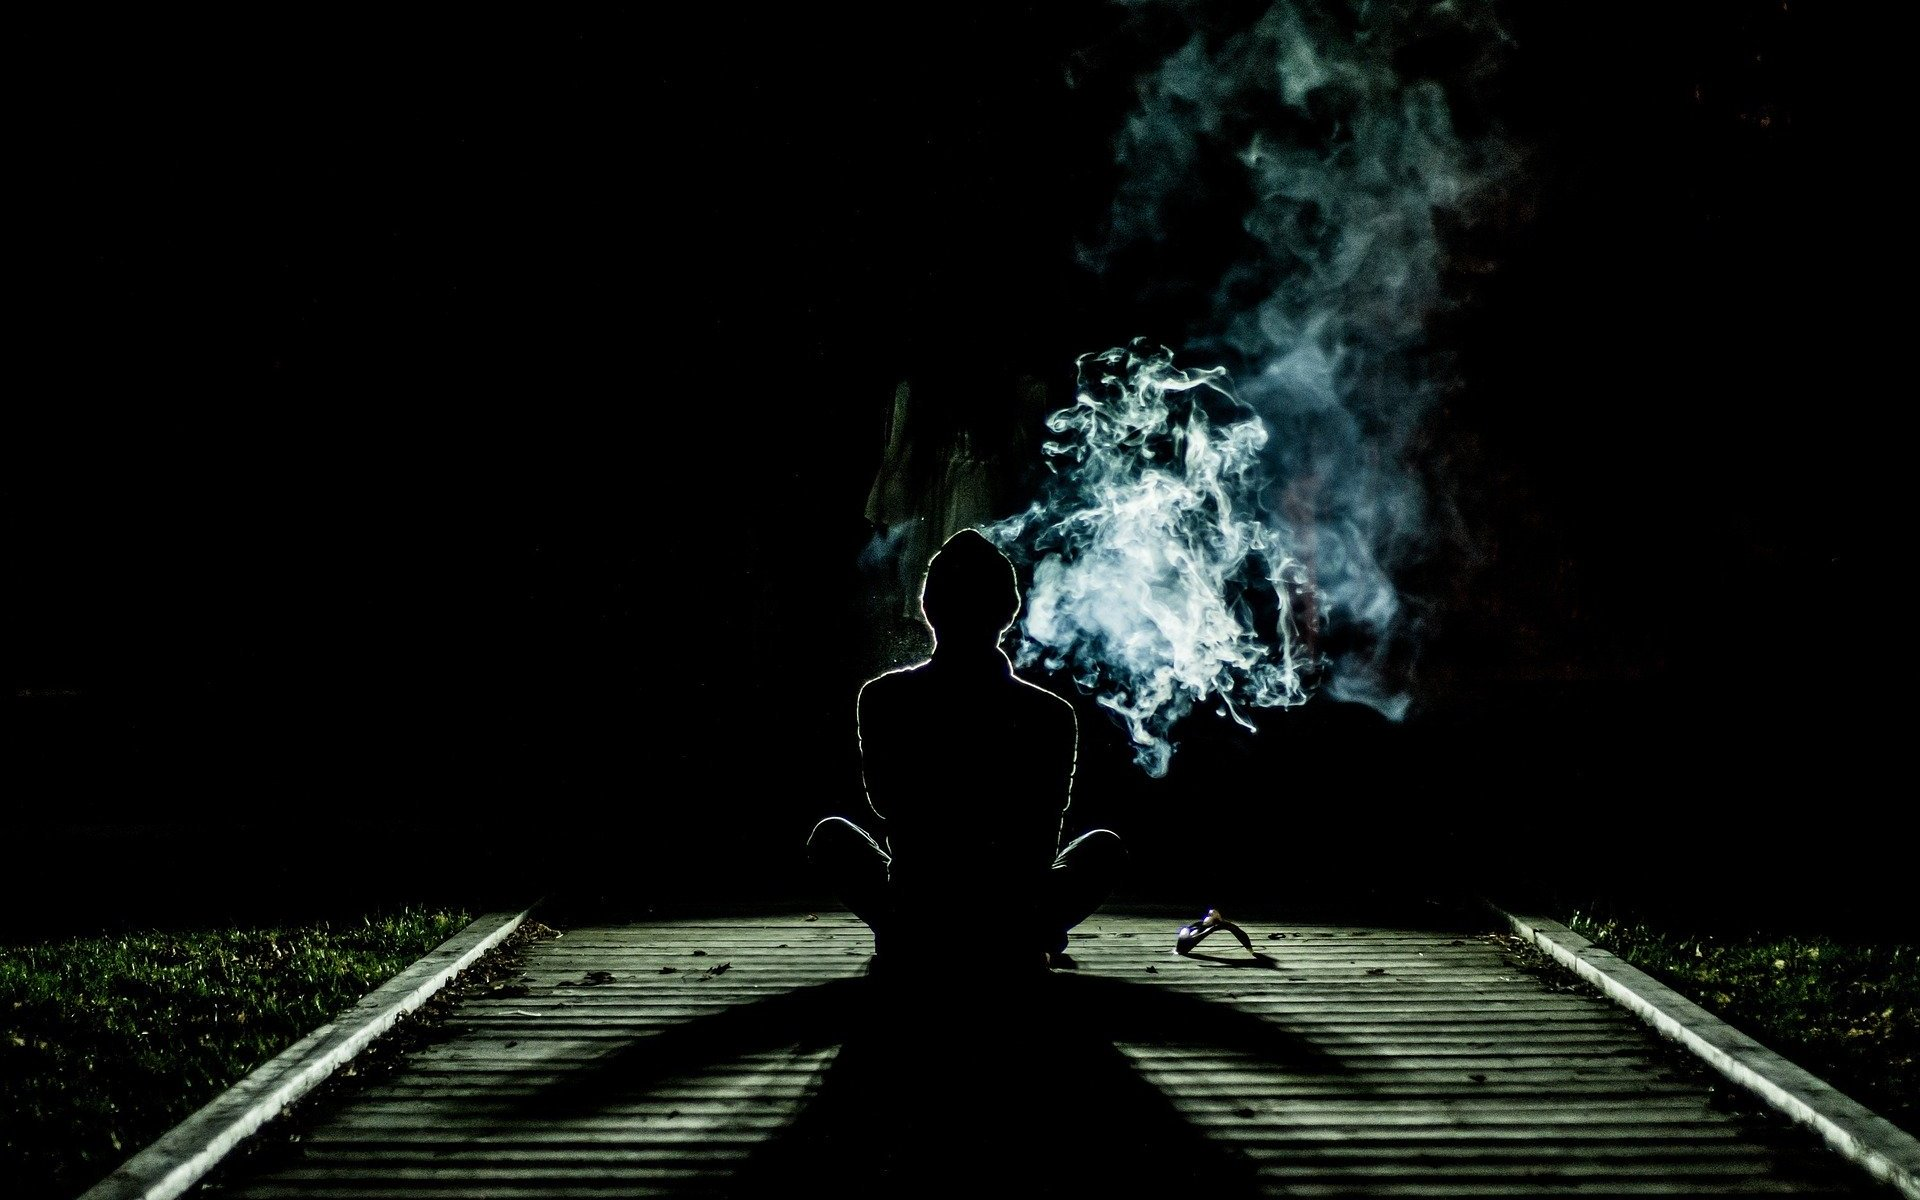 Person sitting on train track with cloud of smoke in the dark